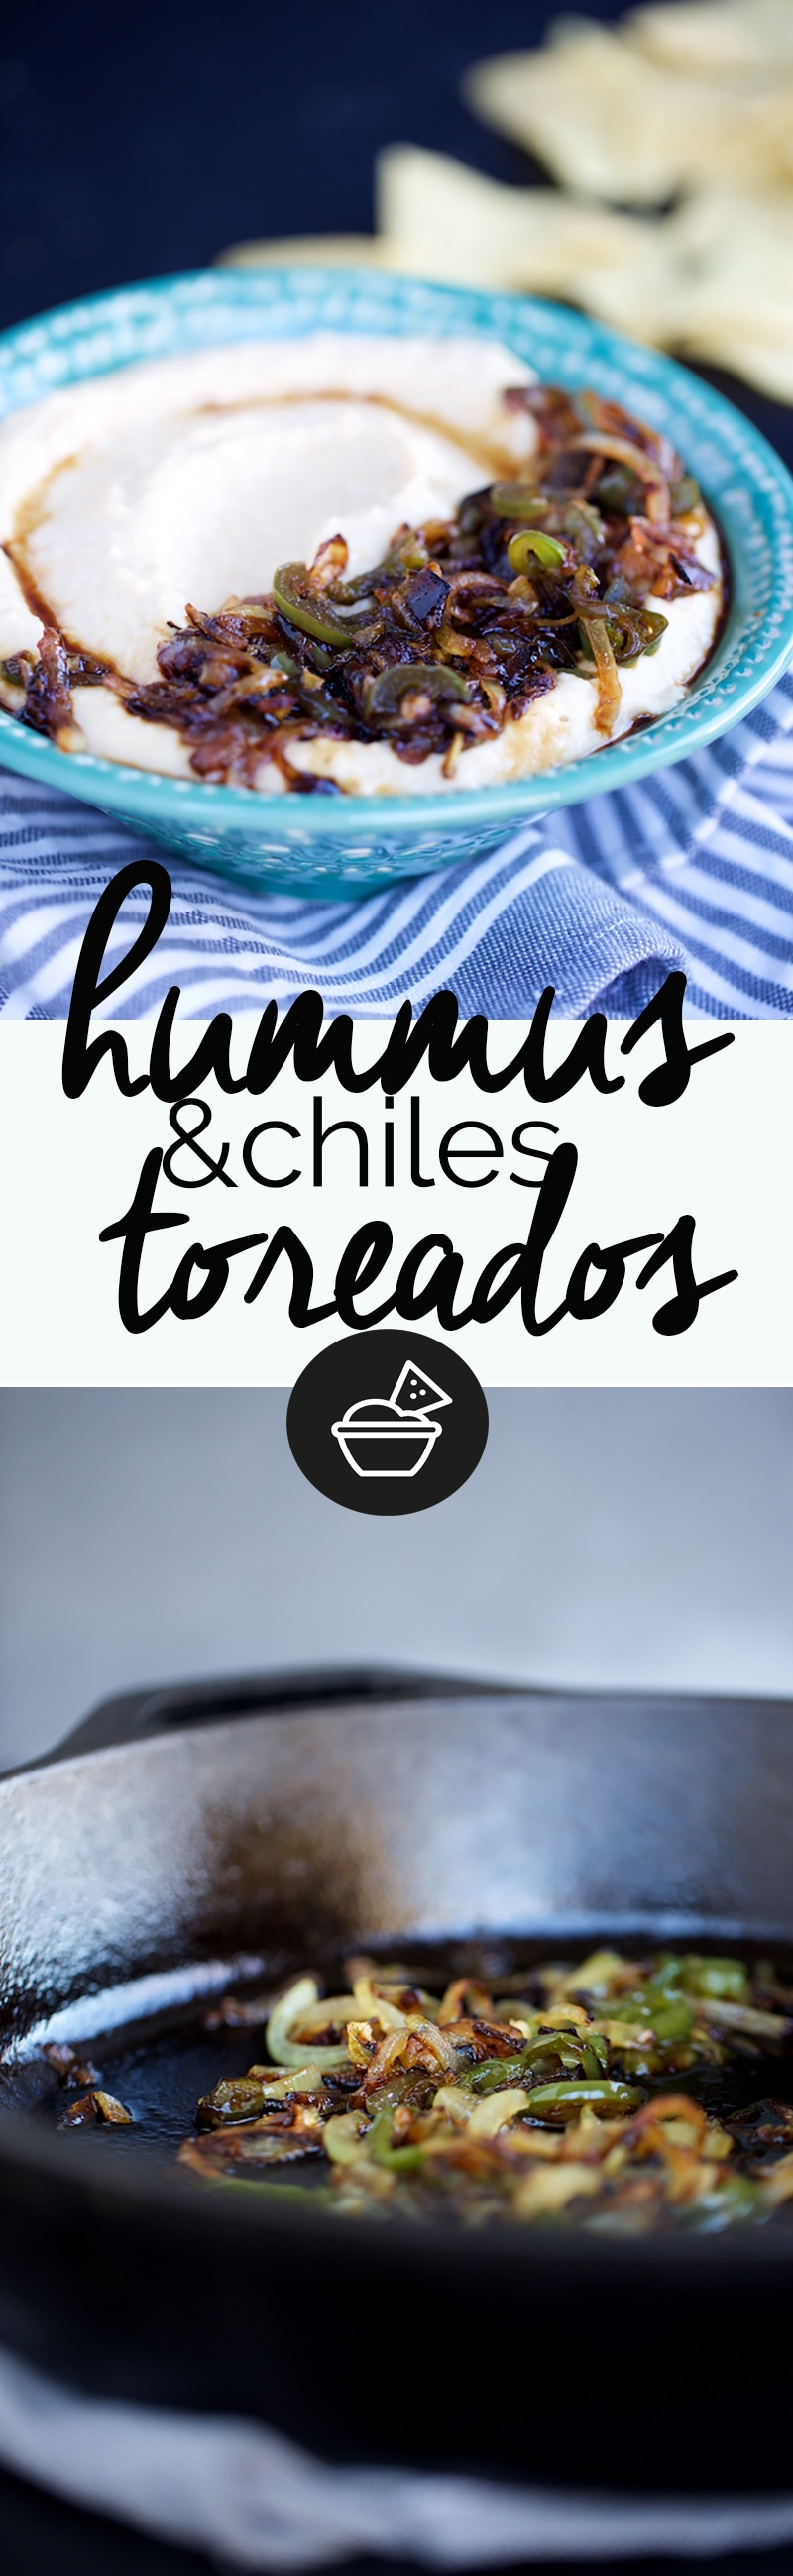 hummus con chiles toreados.